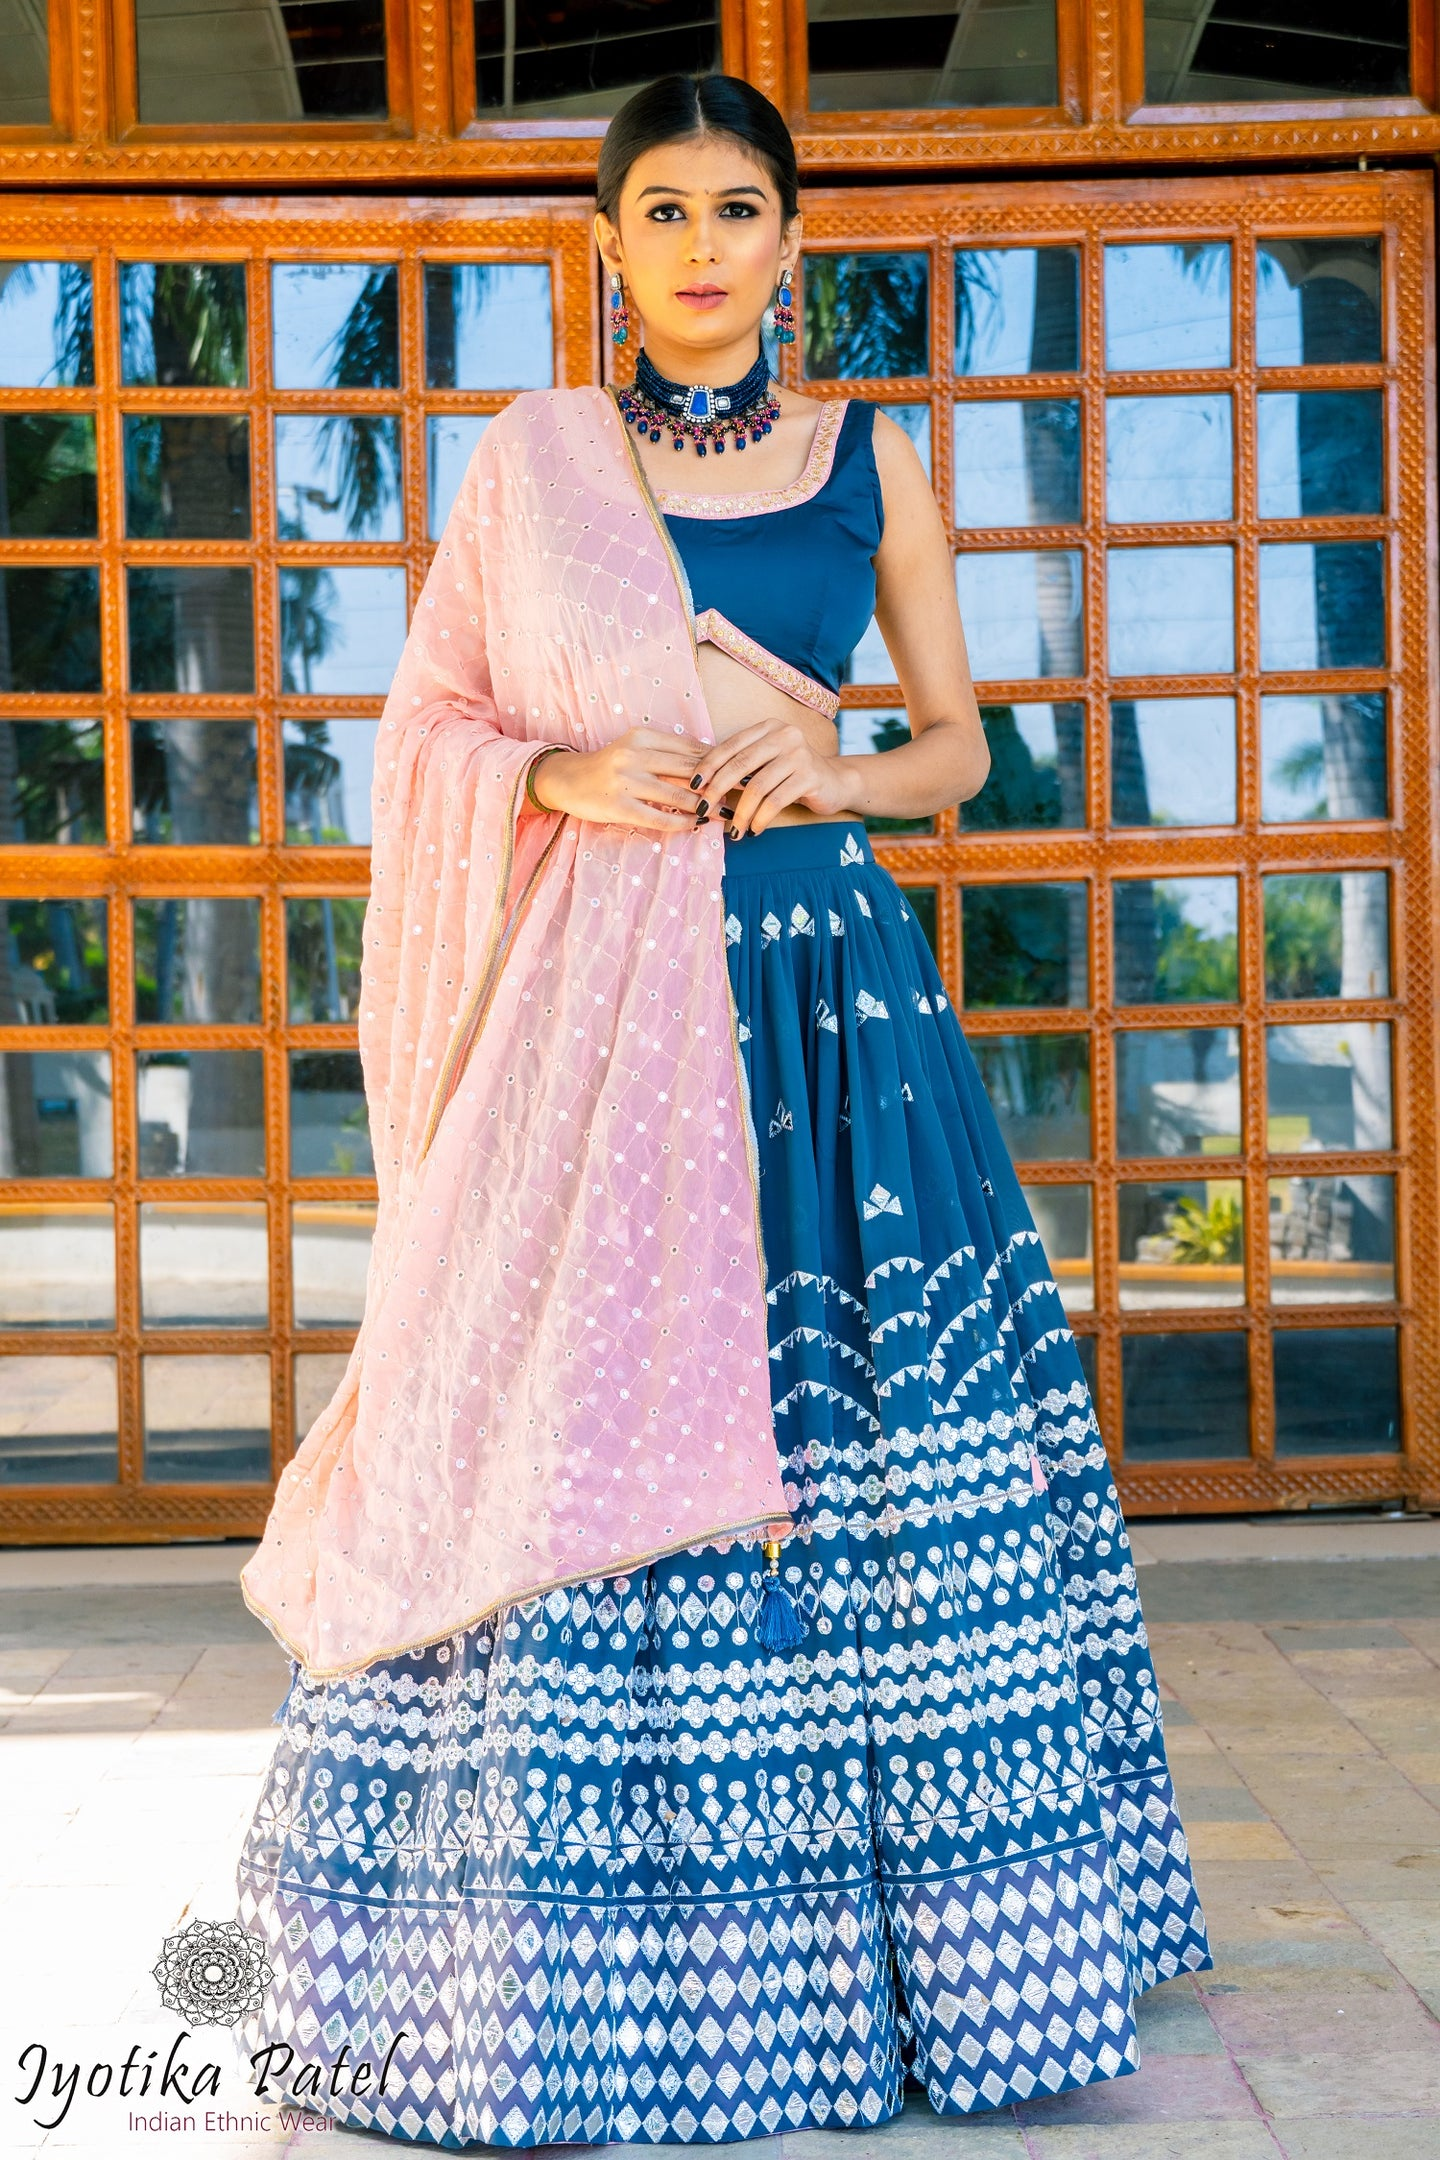 Royal Blue Lengha with silver foilwork